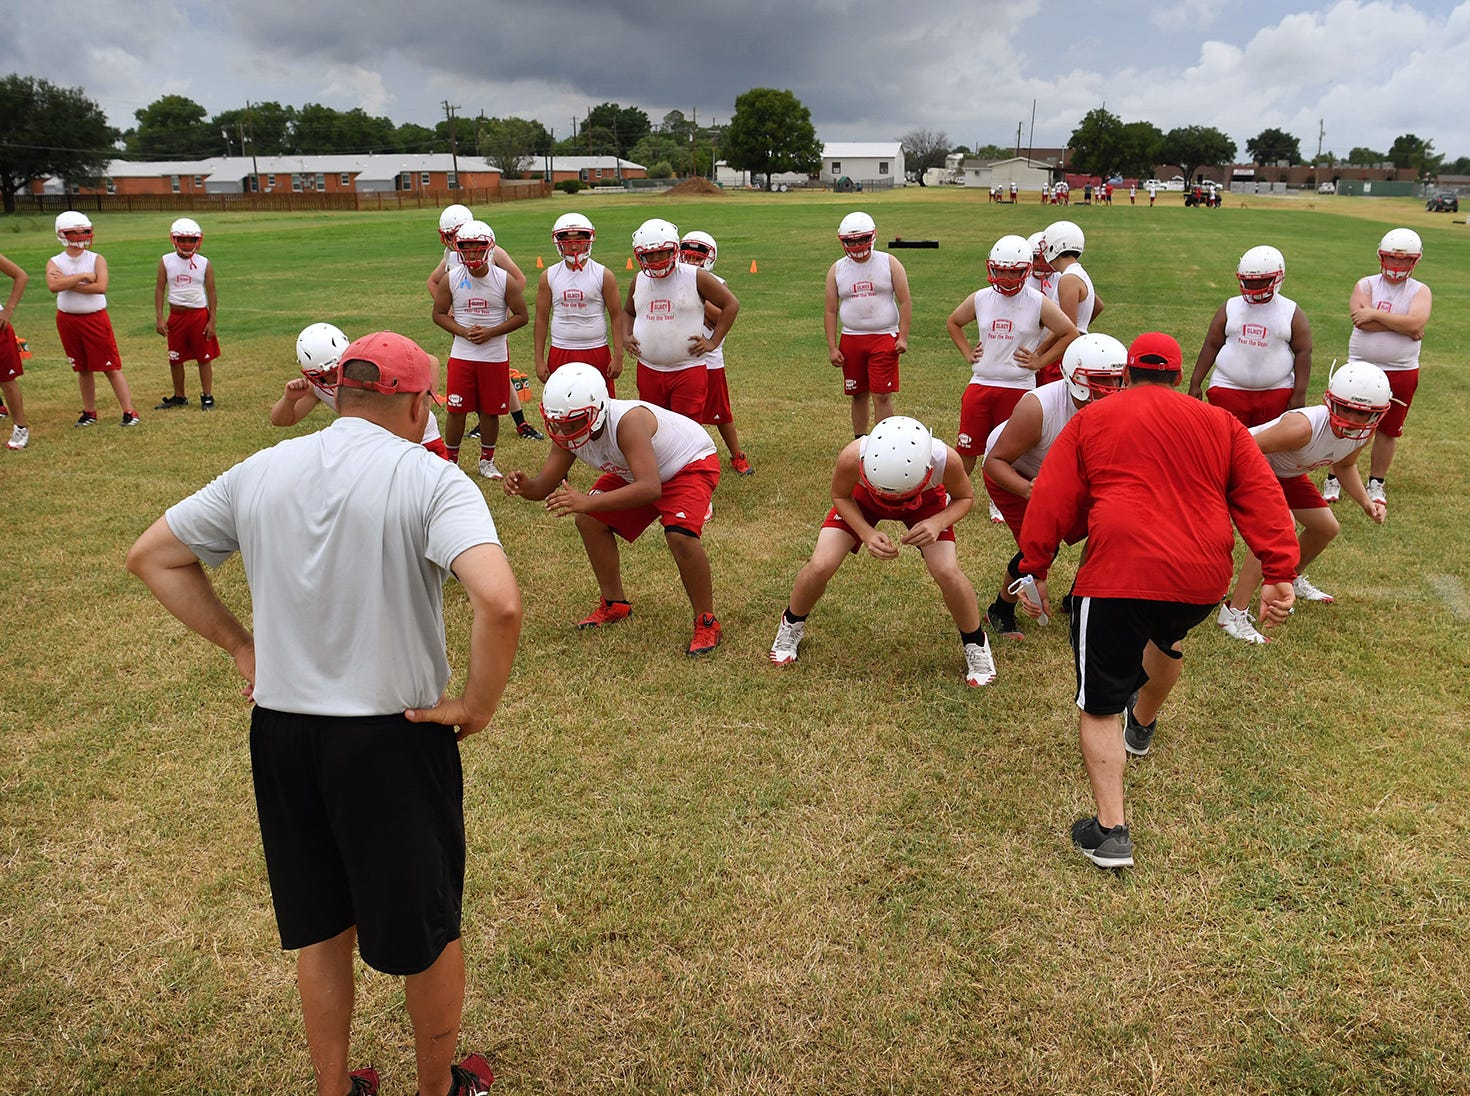 Olney Cubs linemen work on formations and footwork during practice.